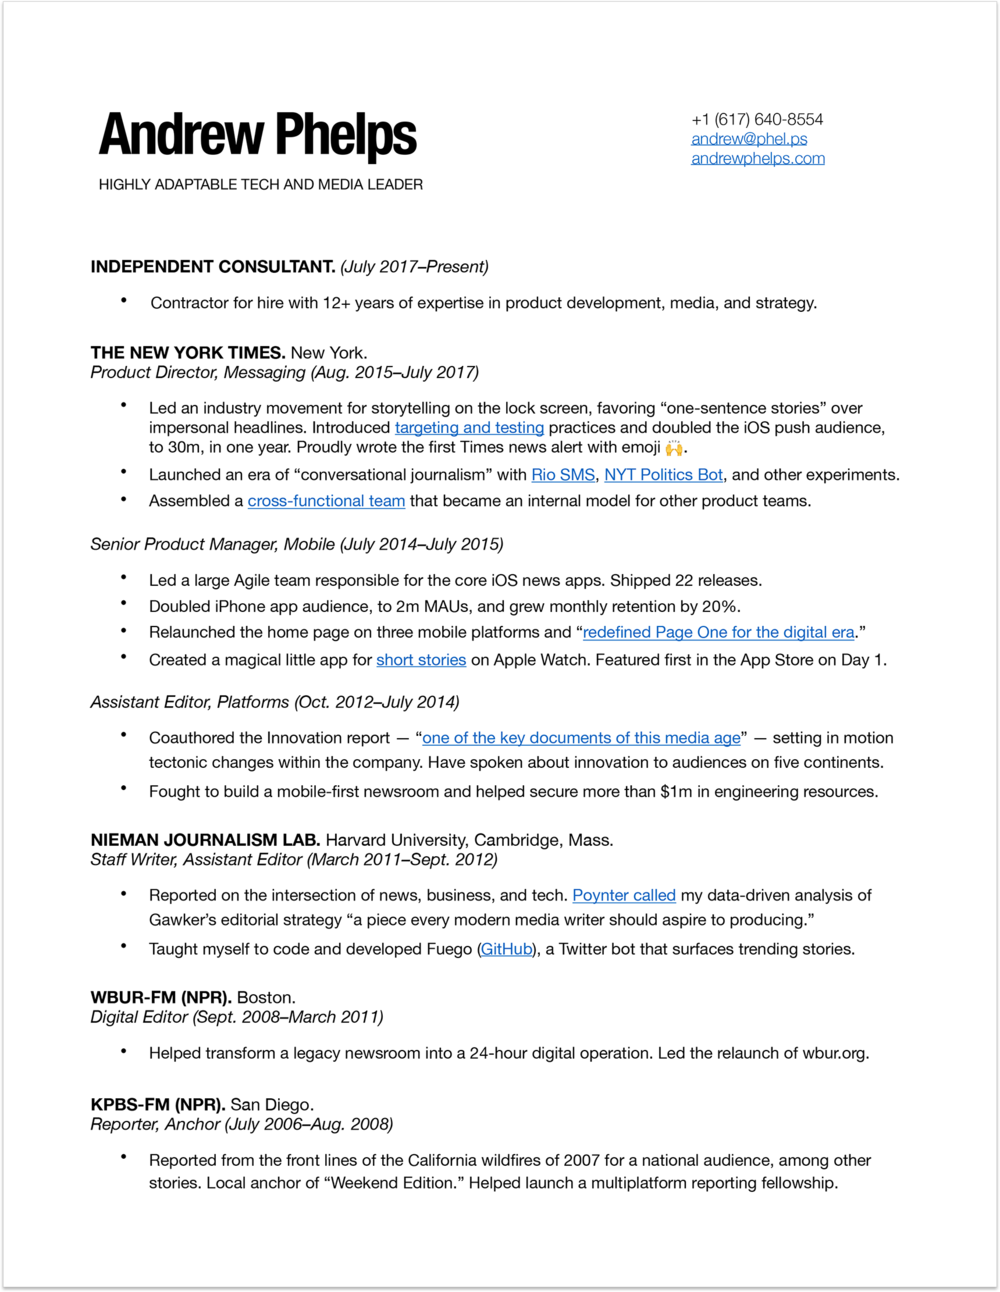 AndrewPhelps-resume-Oct2017-thumb.png